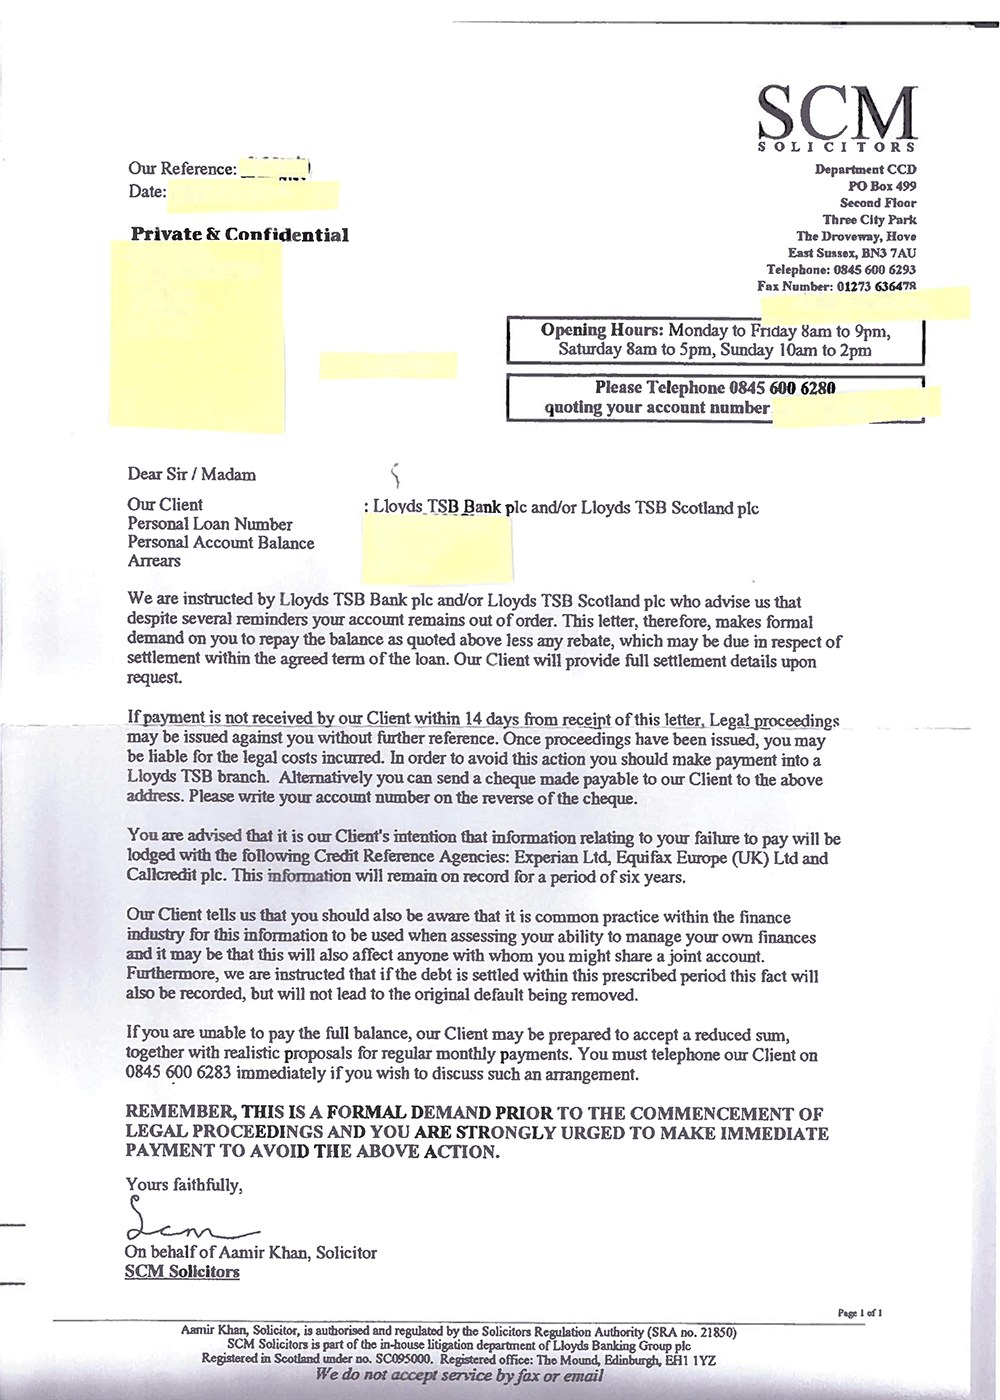 Letter to reclaim ppi for free which consumer rights oukasfo is it worth using a ppi claims company 10 things you spiritdancerdesigns Choice Image